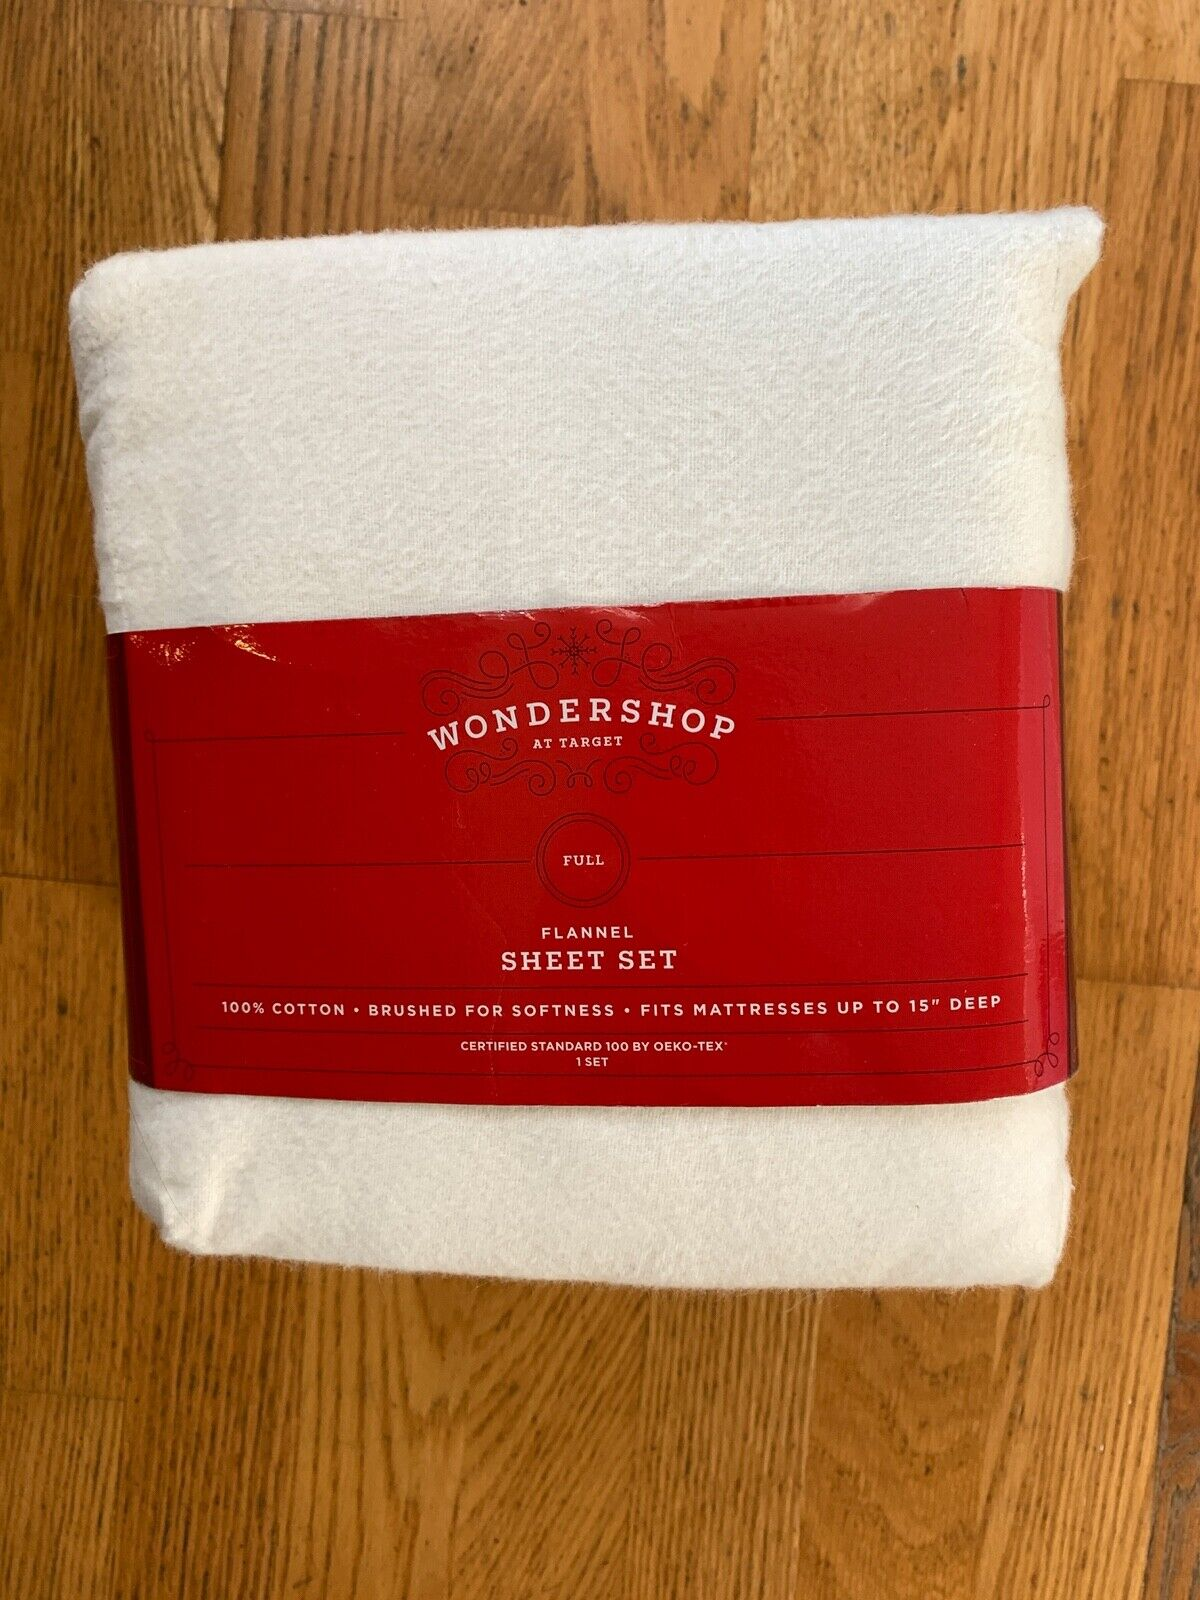 New Target Wondershop Sour Cream White 4pc Flannel Sheet Set Full For Sale Online